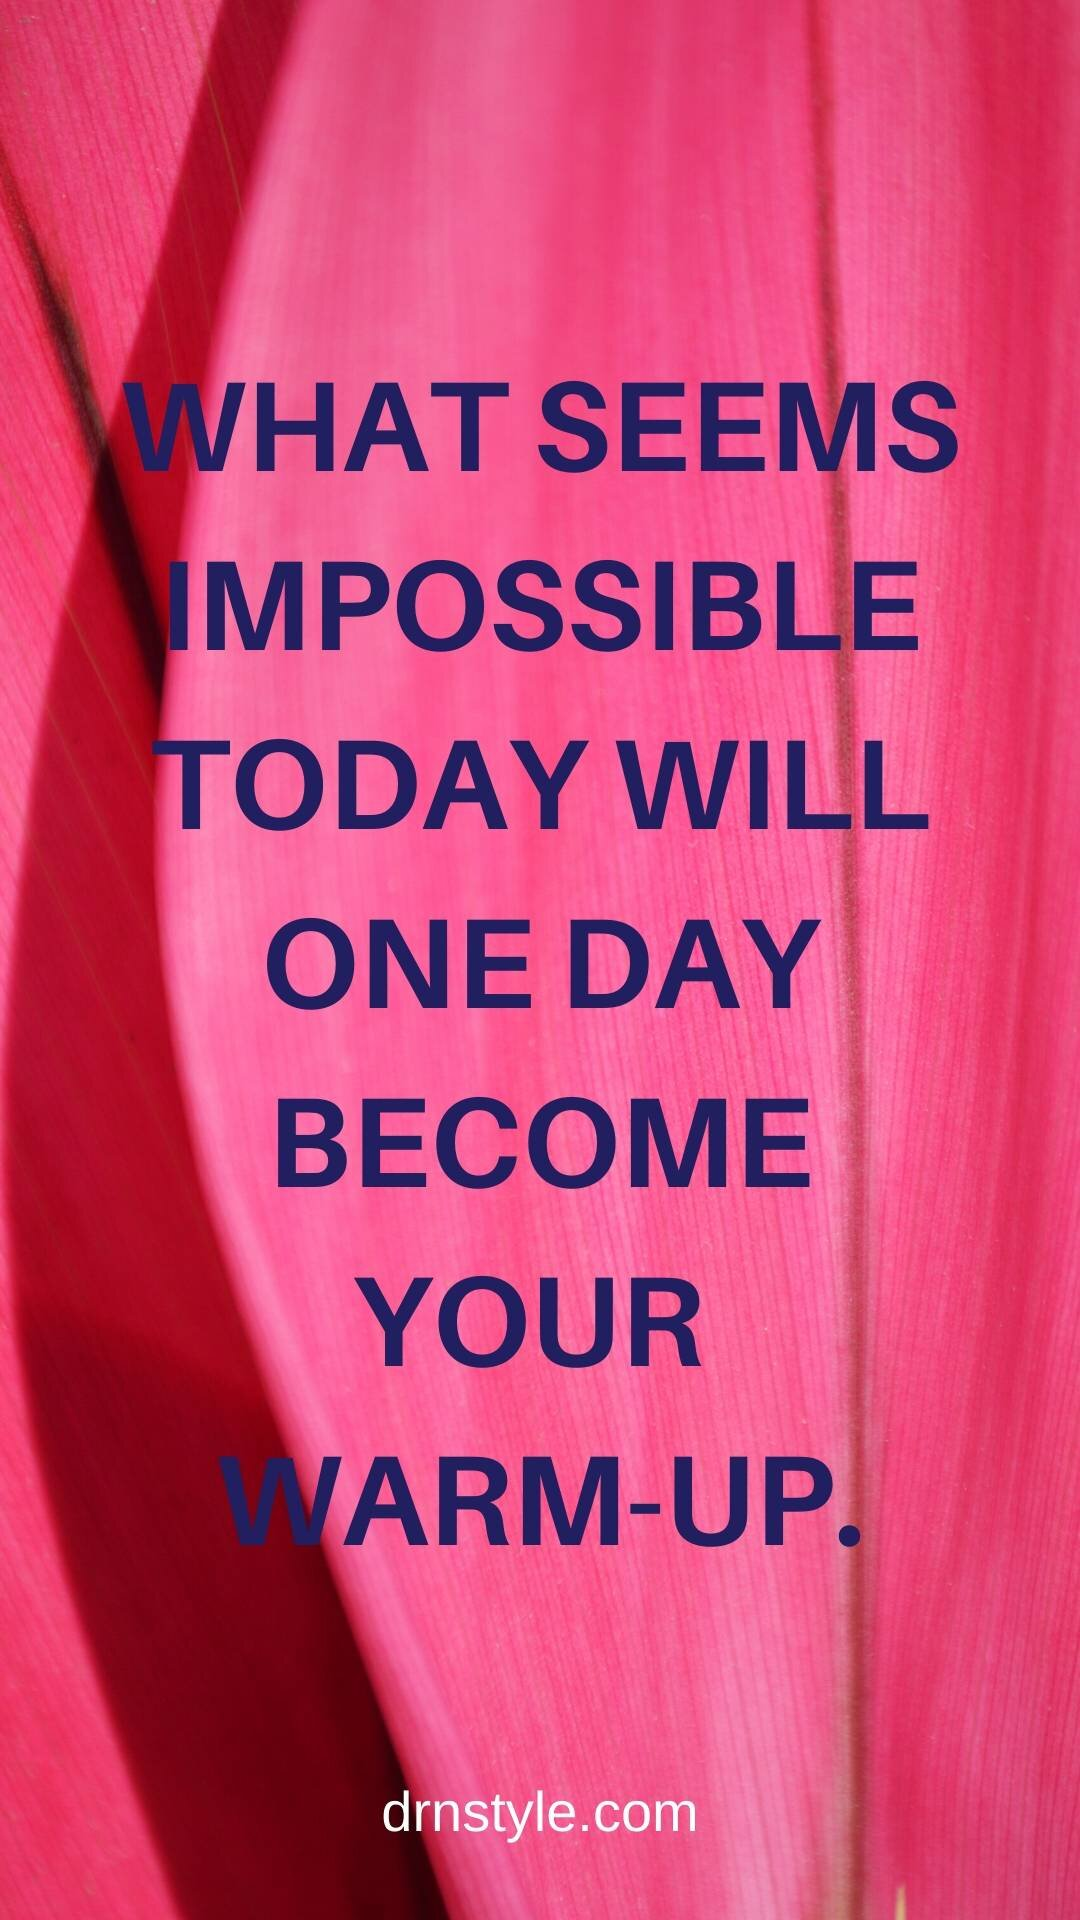 What seems impossible today will one day be your warm-up.